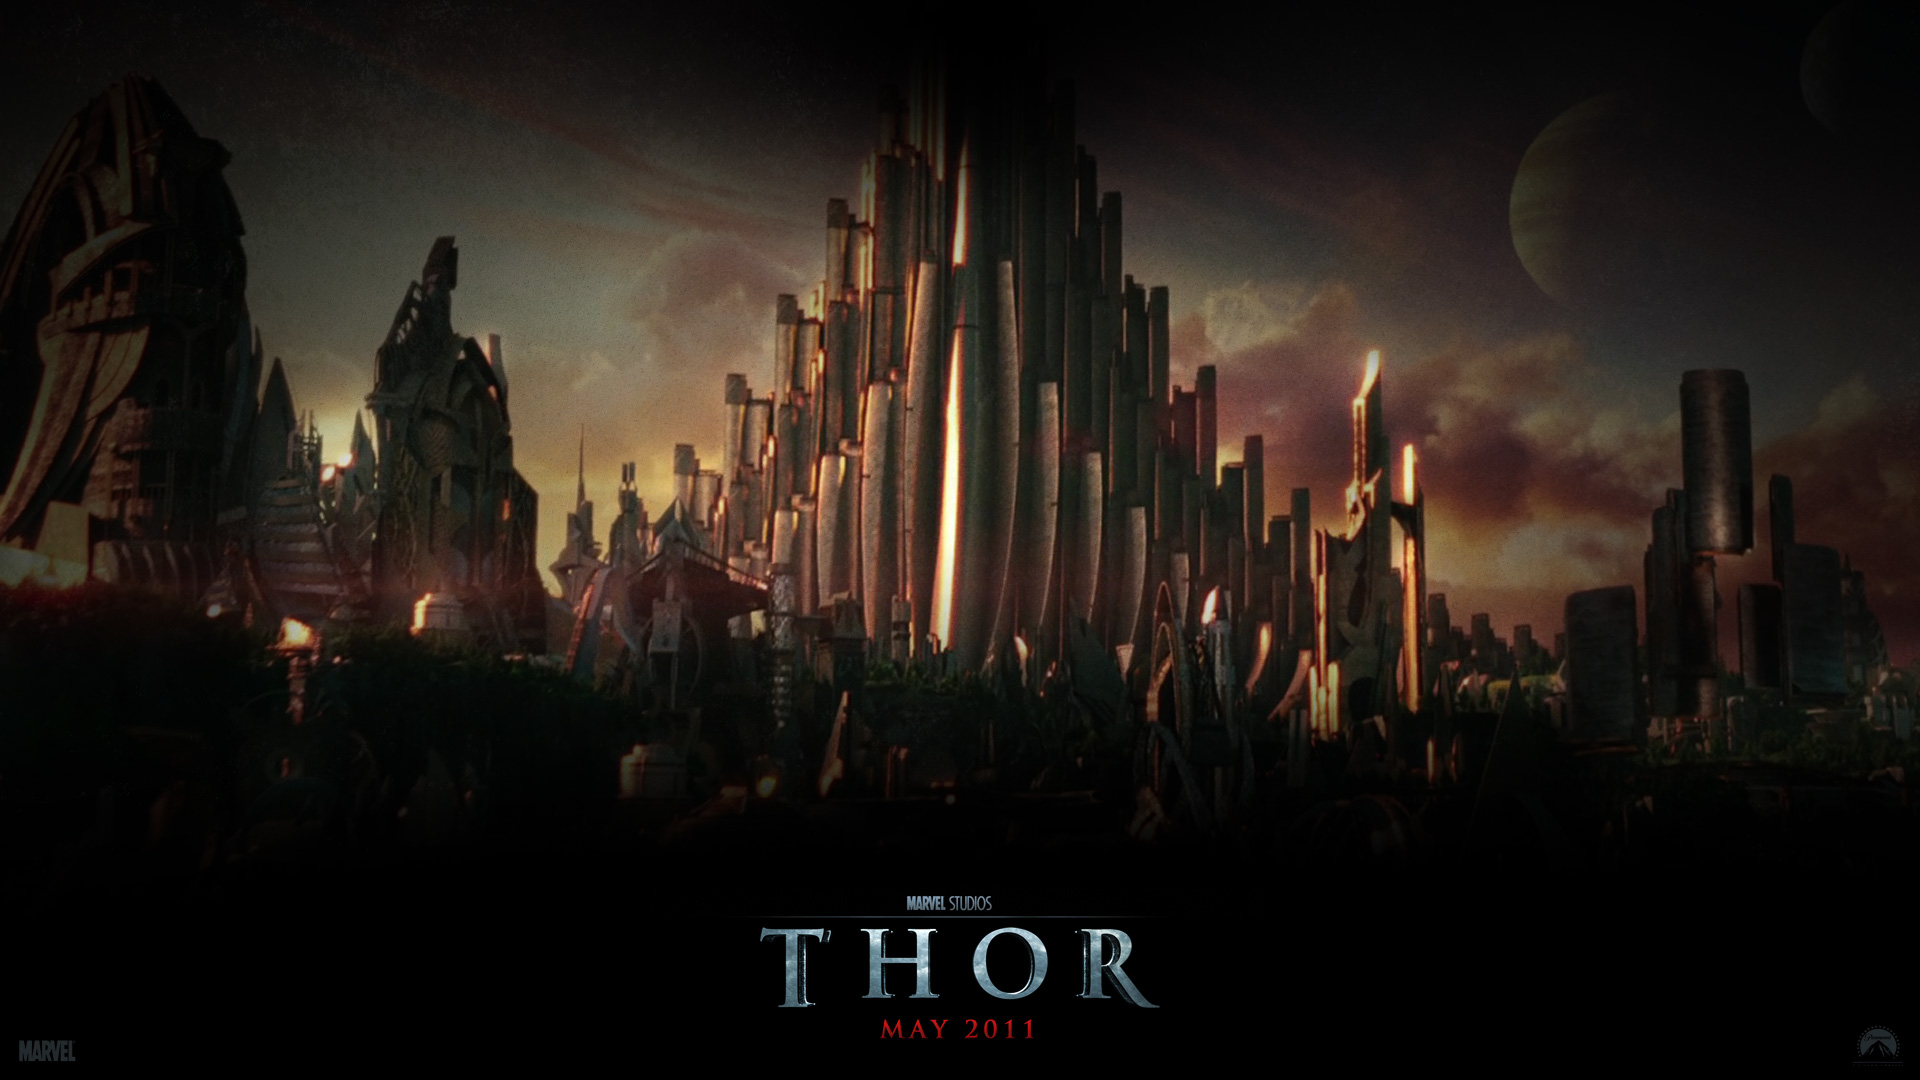 ... Asgard from the Movie Thor wallpaper - Click picture for high.